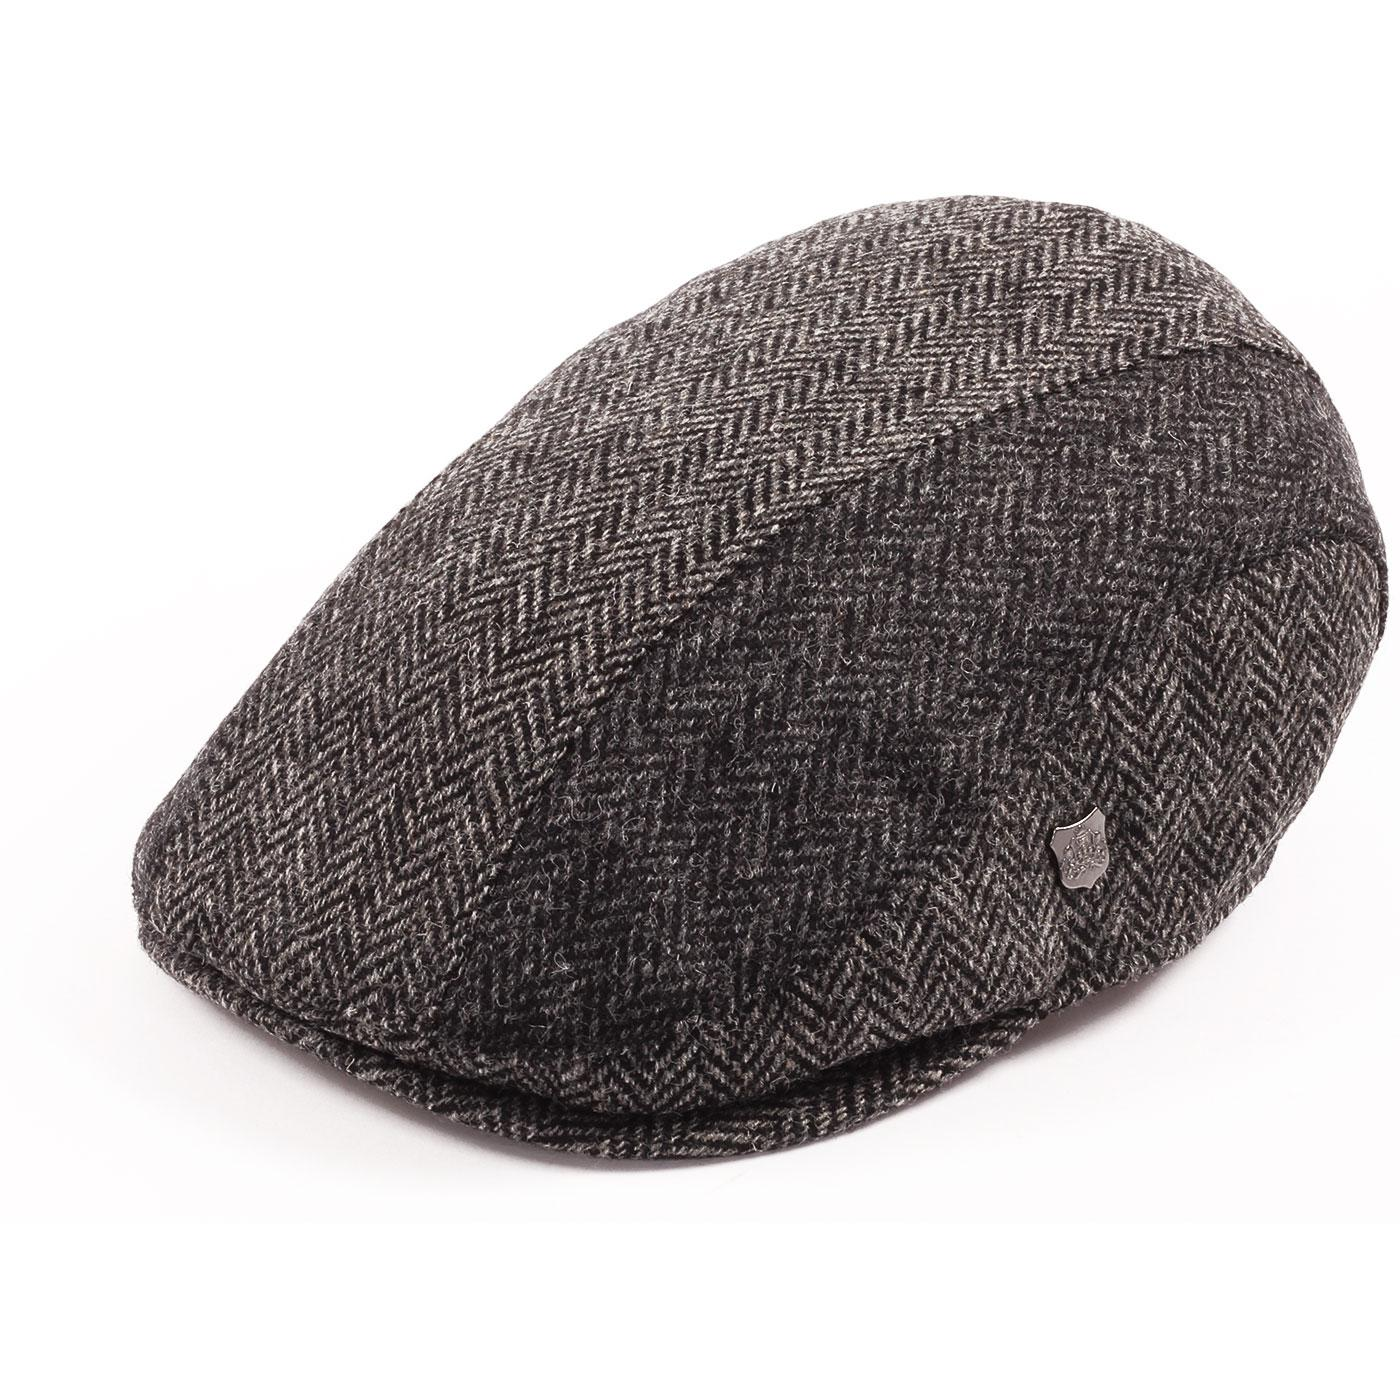 Dalston FAILSWORTH Herringbone Stripe Flat Cap (G)